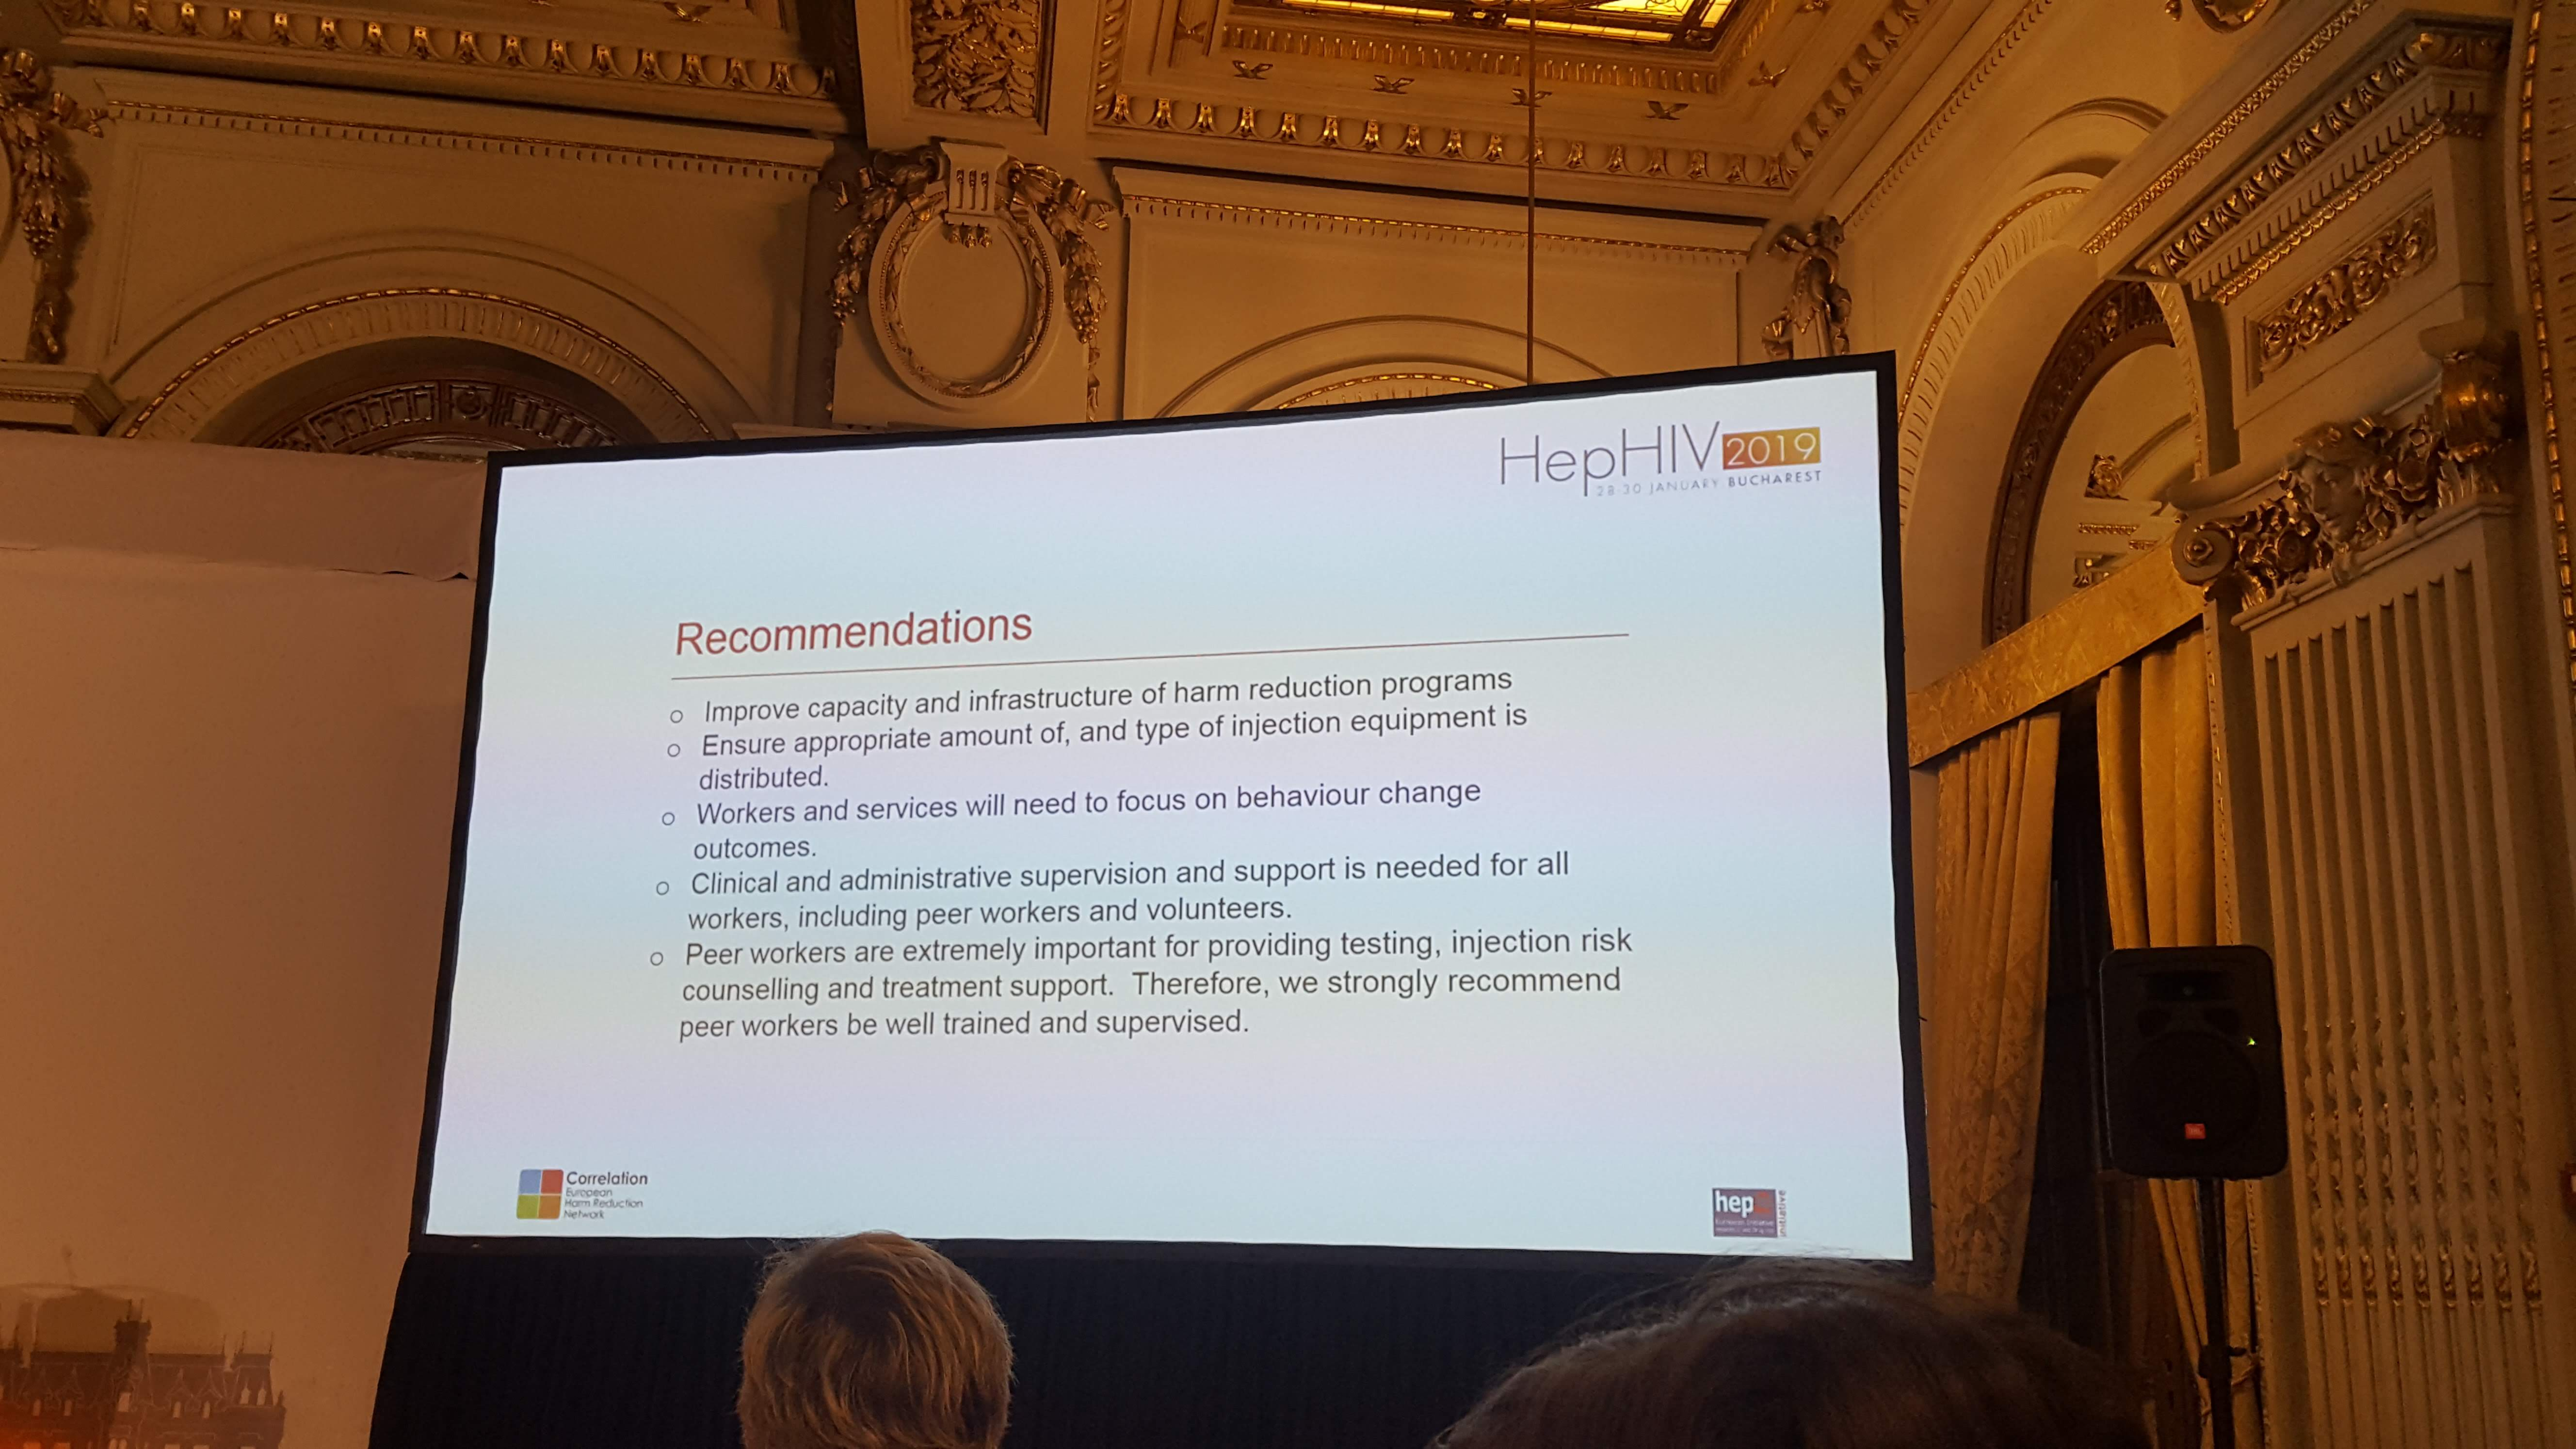 Recommendations by HepHIV 2019